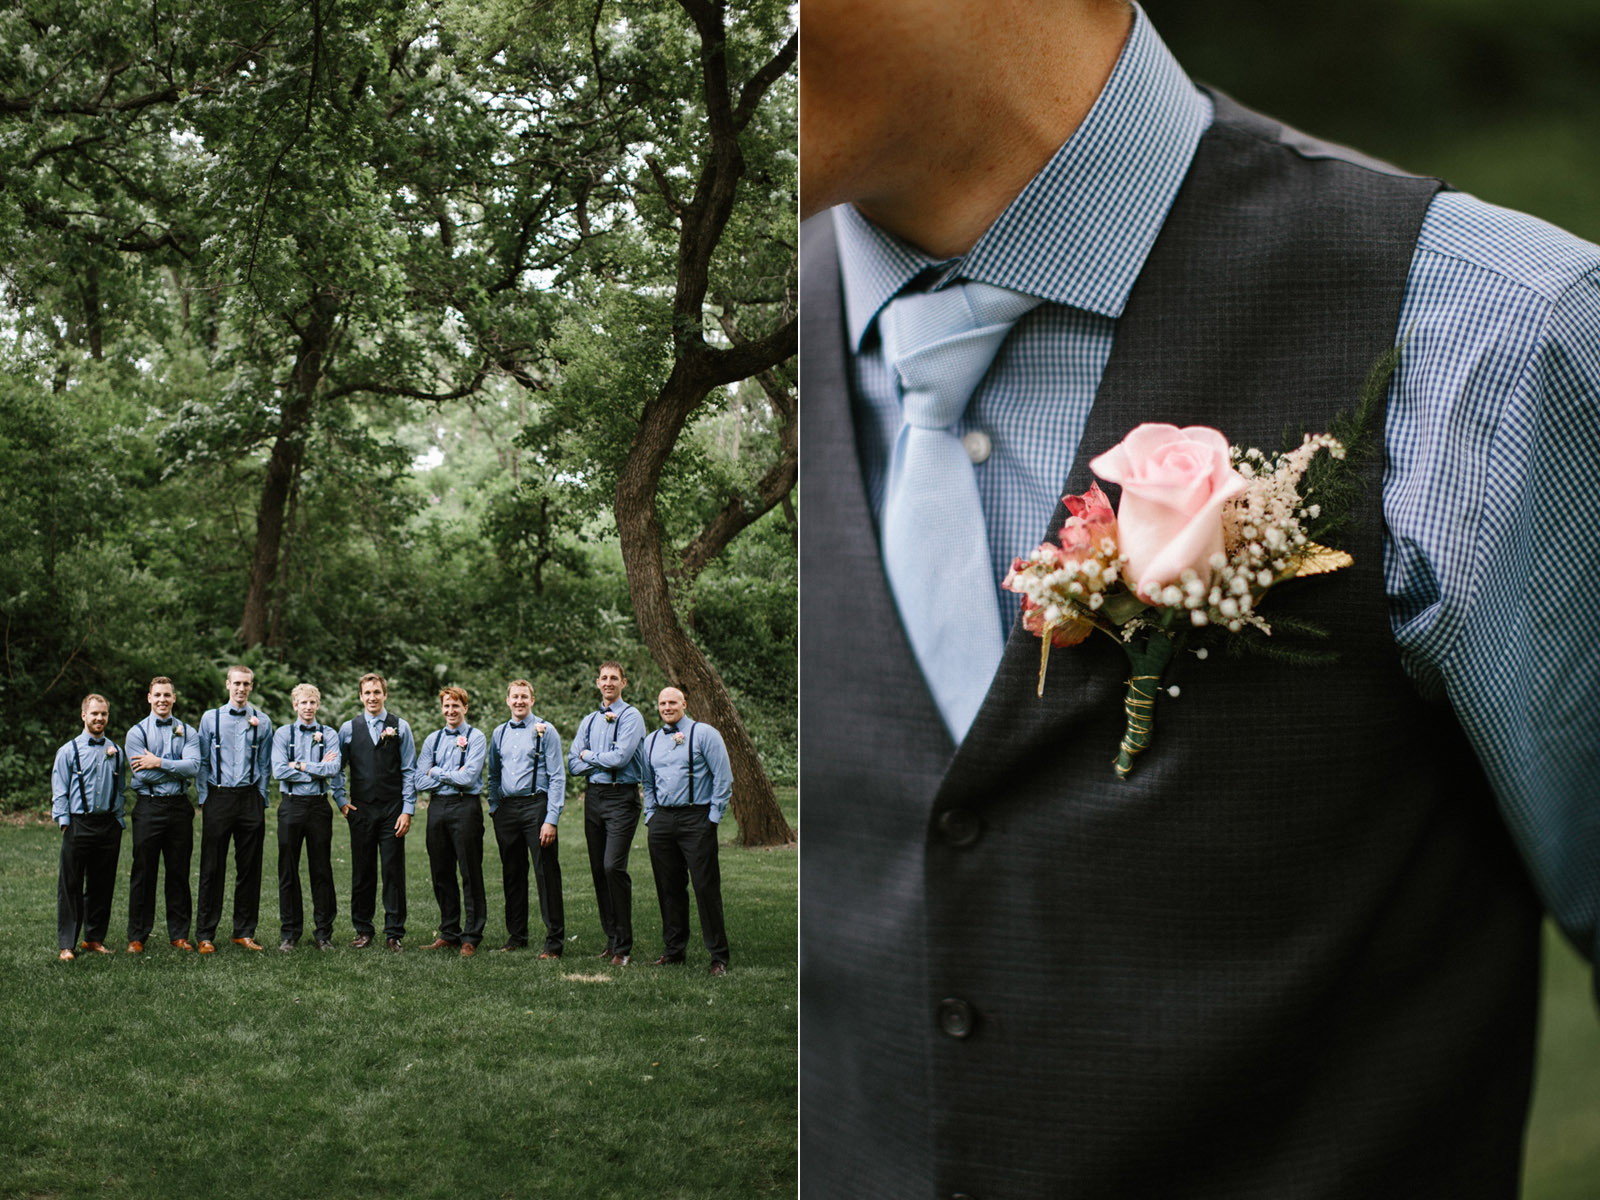 Outdoor_Wedding_SiouxFalls_MaryJoWegnerArboretum_Photographer_Calli&Jon_064.jpg